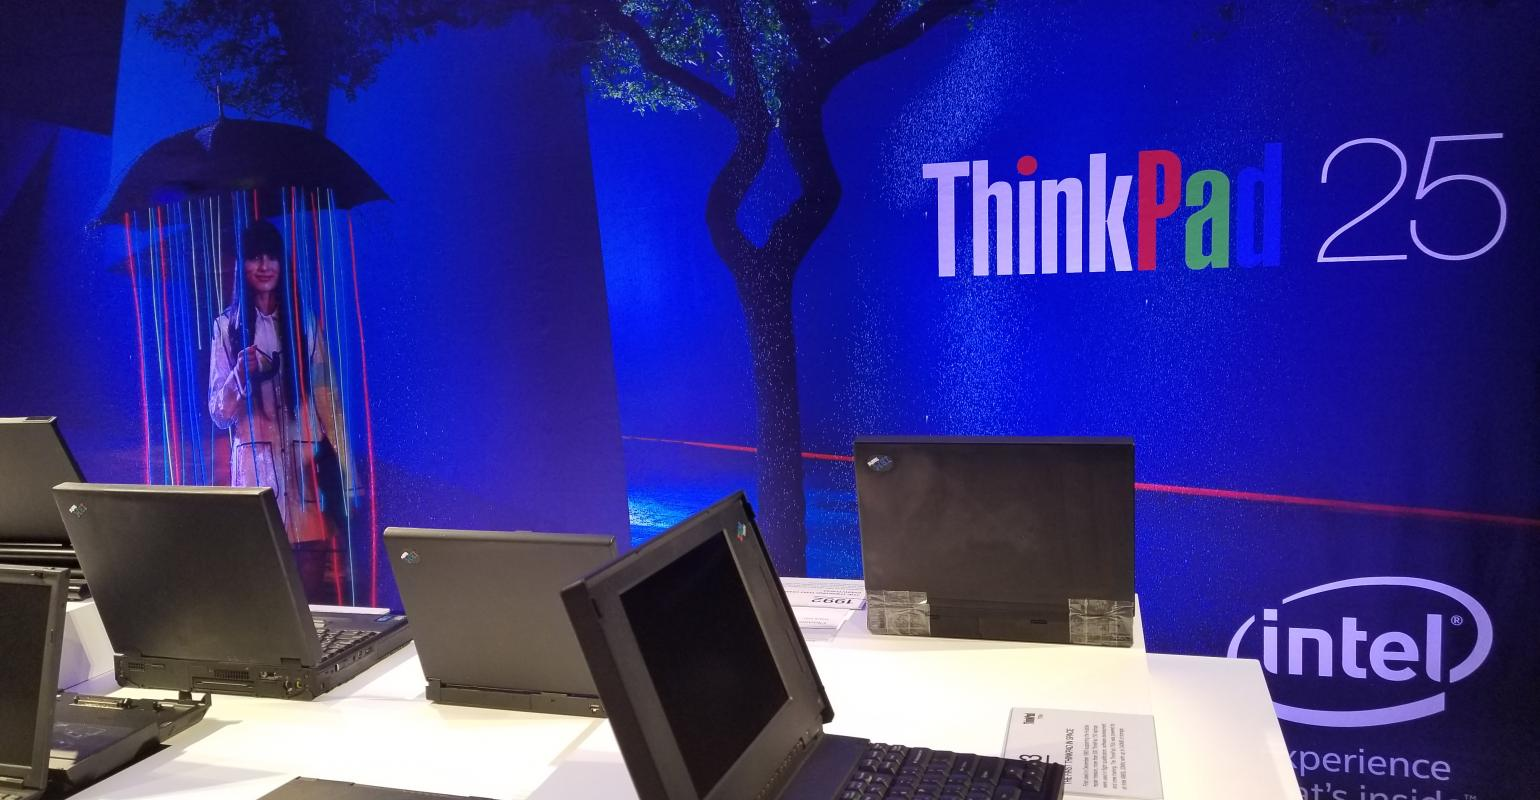 Hardware | The unique look of ThinkPad over the years is